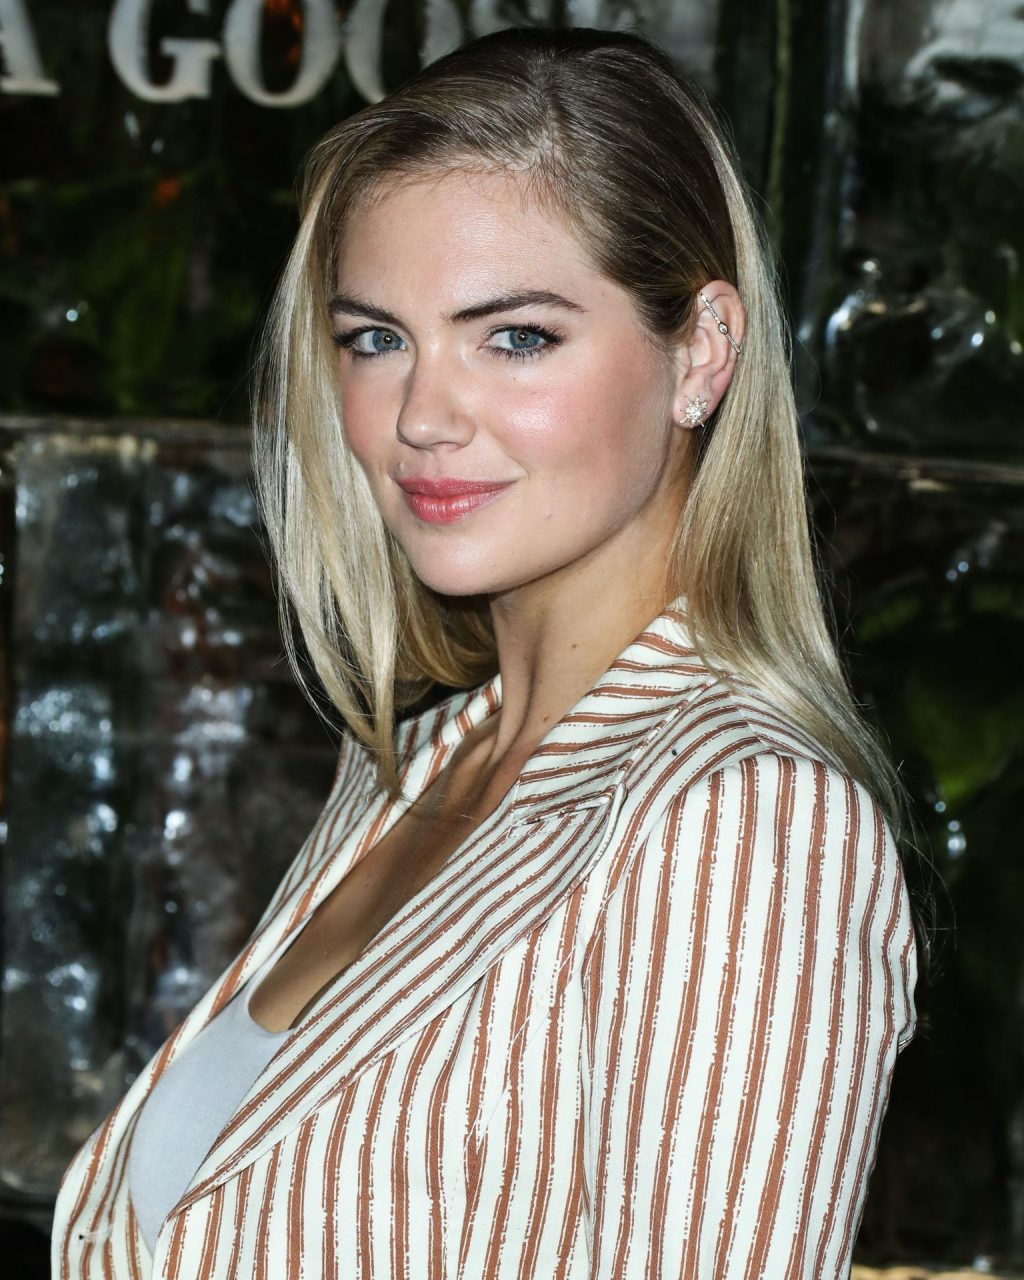 Kate Upton Sexy The Fappening Blog 81 1024x1280 - Kate Upton Attends Canada Goose And Vogue Cocktails & Conversations (104 Photos)